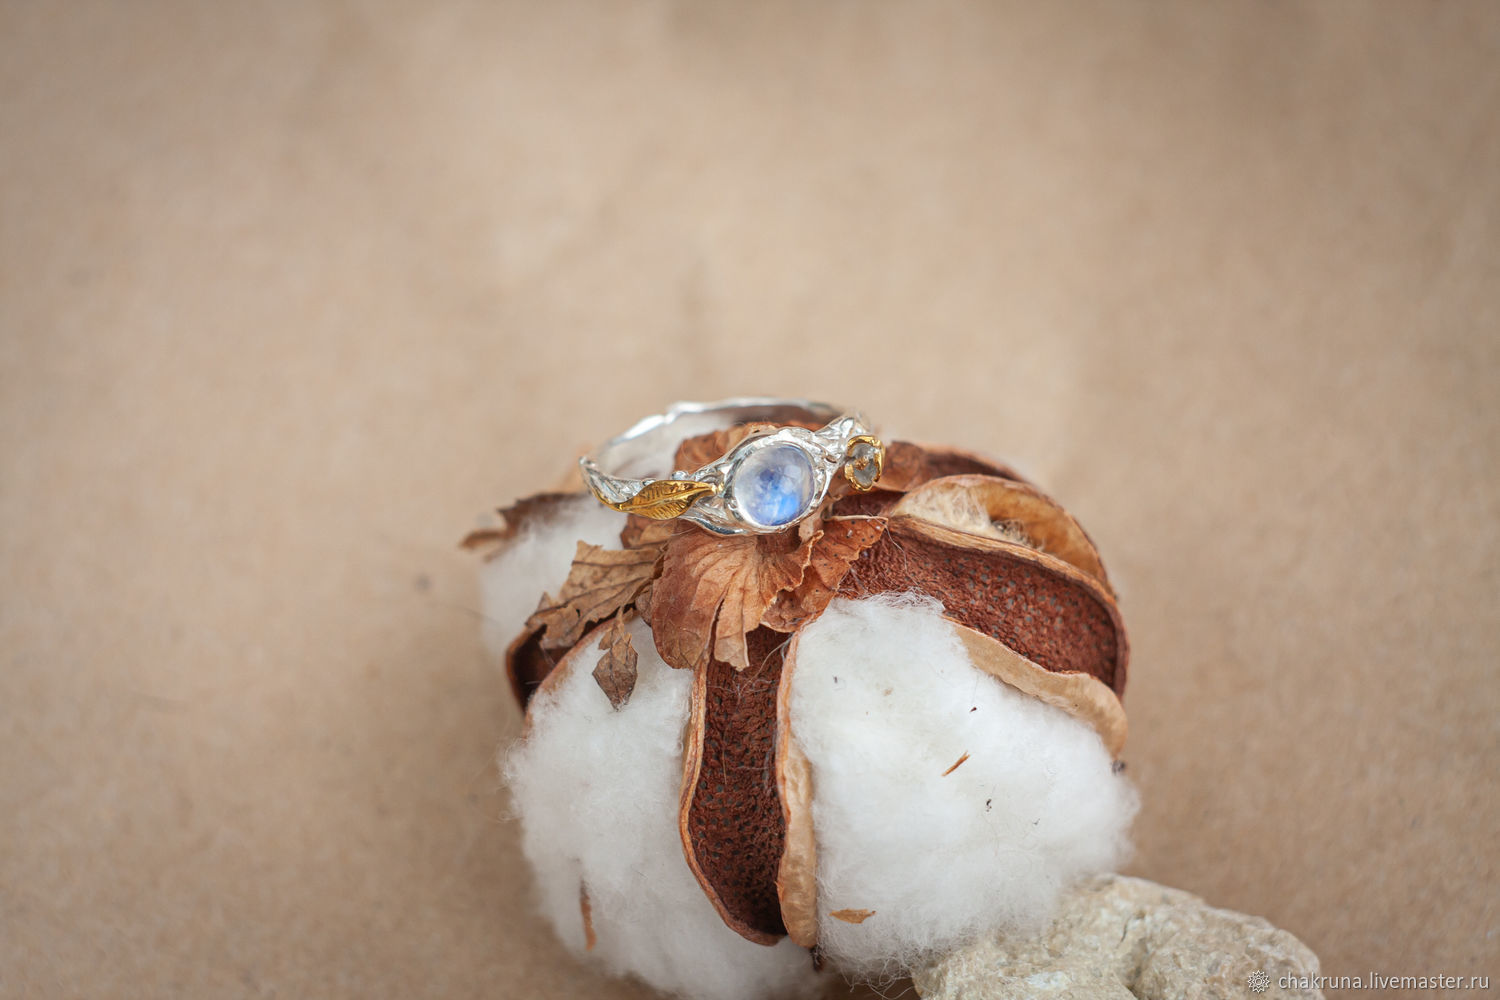 Unusual silver ring with a moonstone and gold leaf, Rings, Moscow,  Фото №1